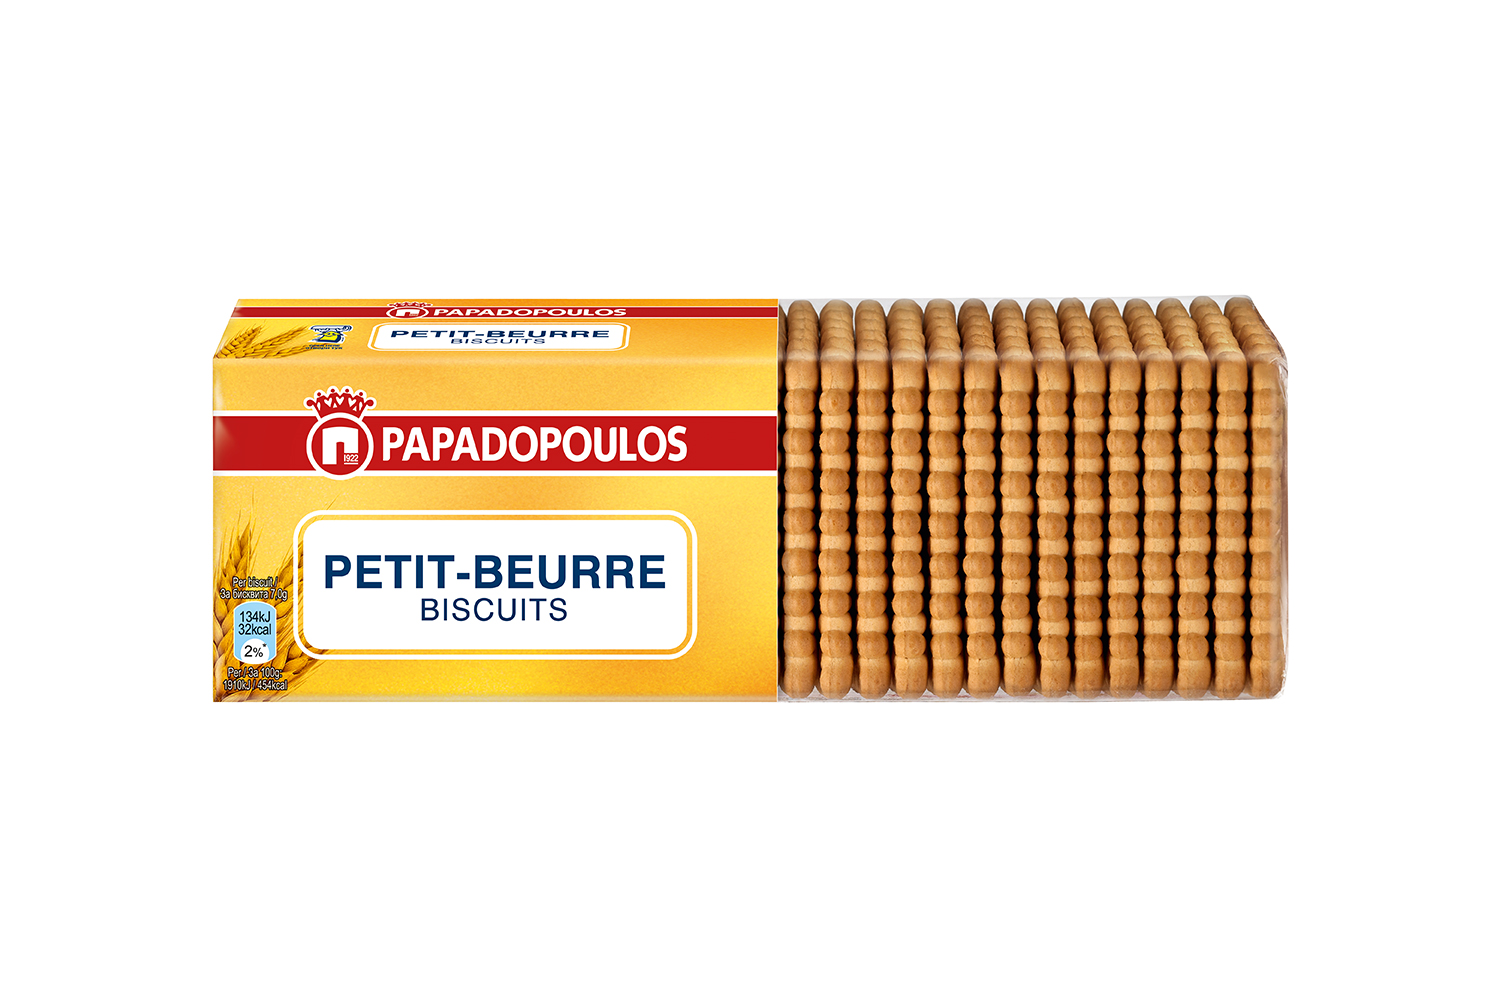 Petit-beurre biscuits 225g